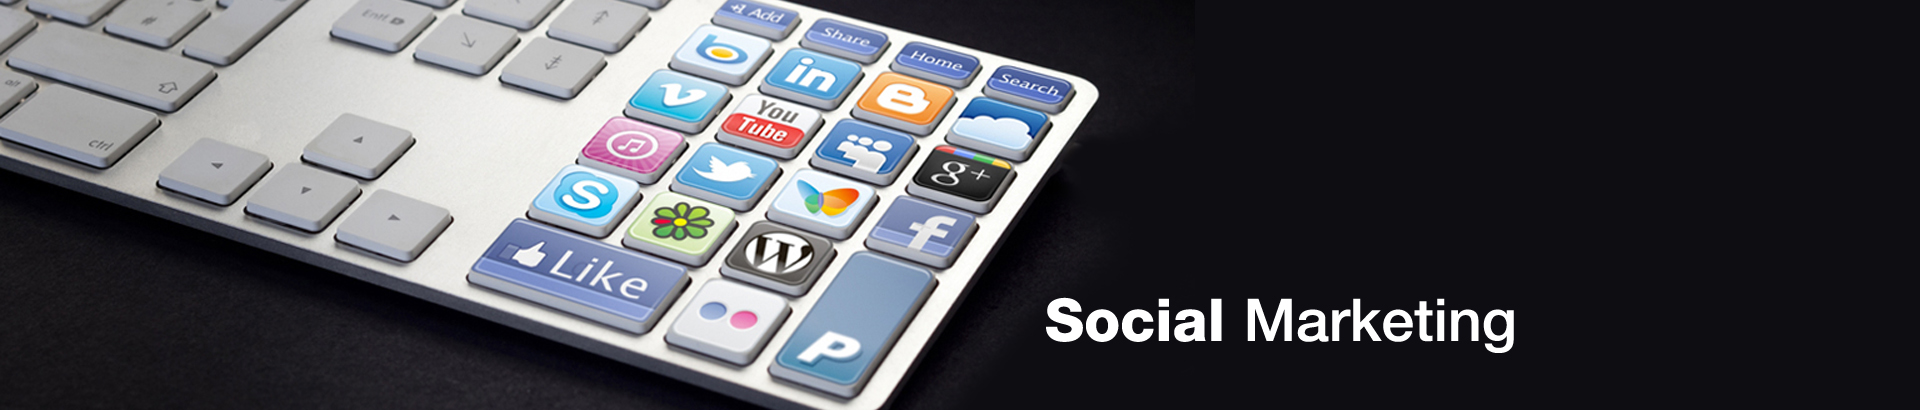 social marketing sitesbydesign